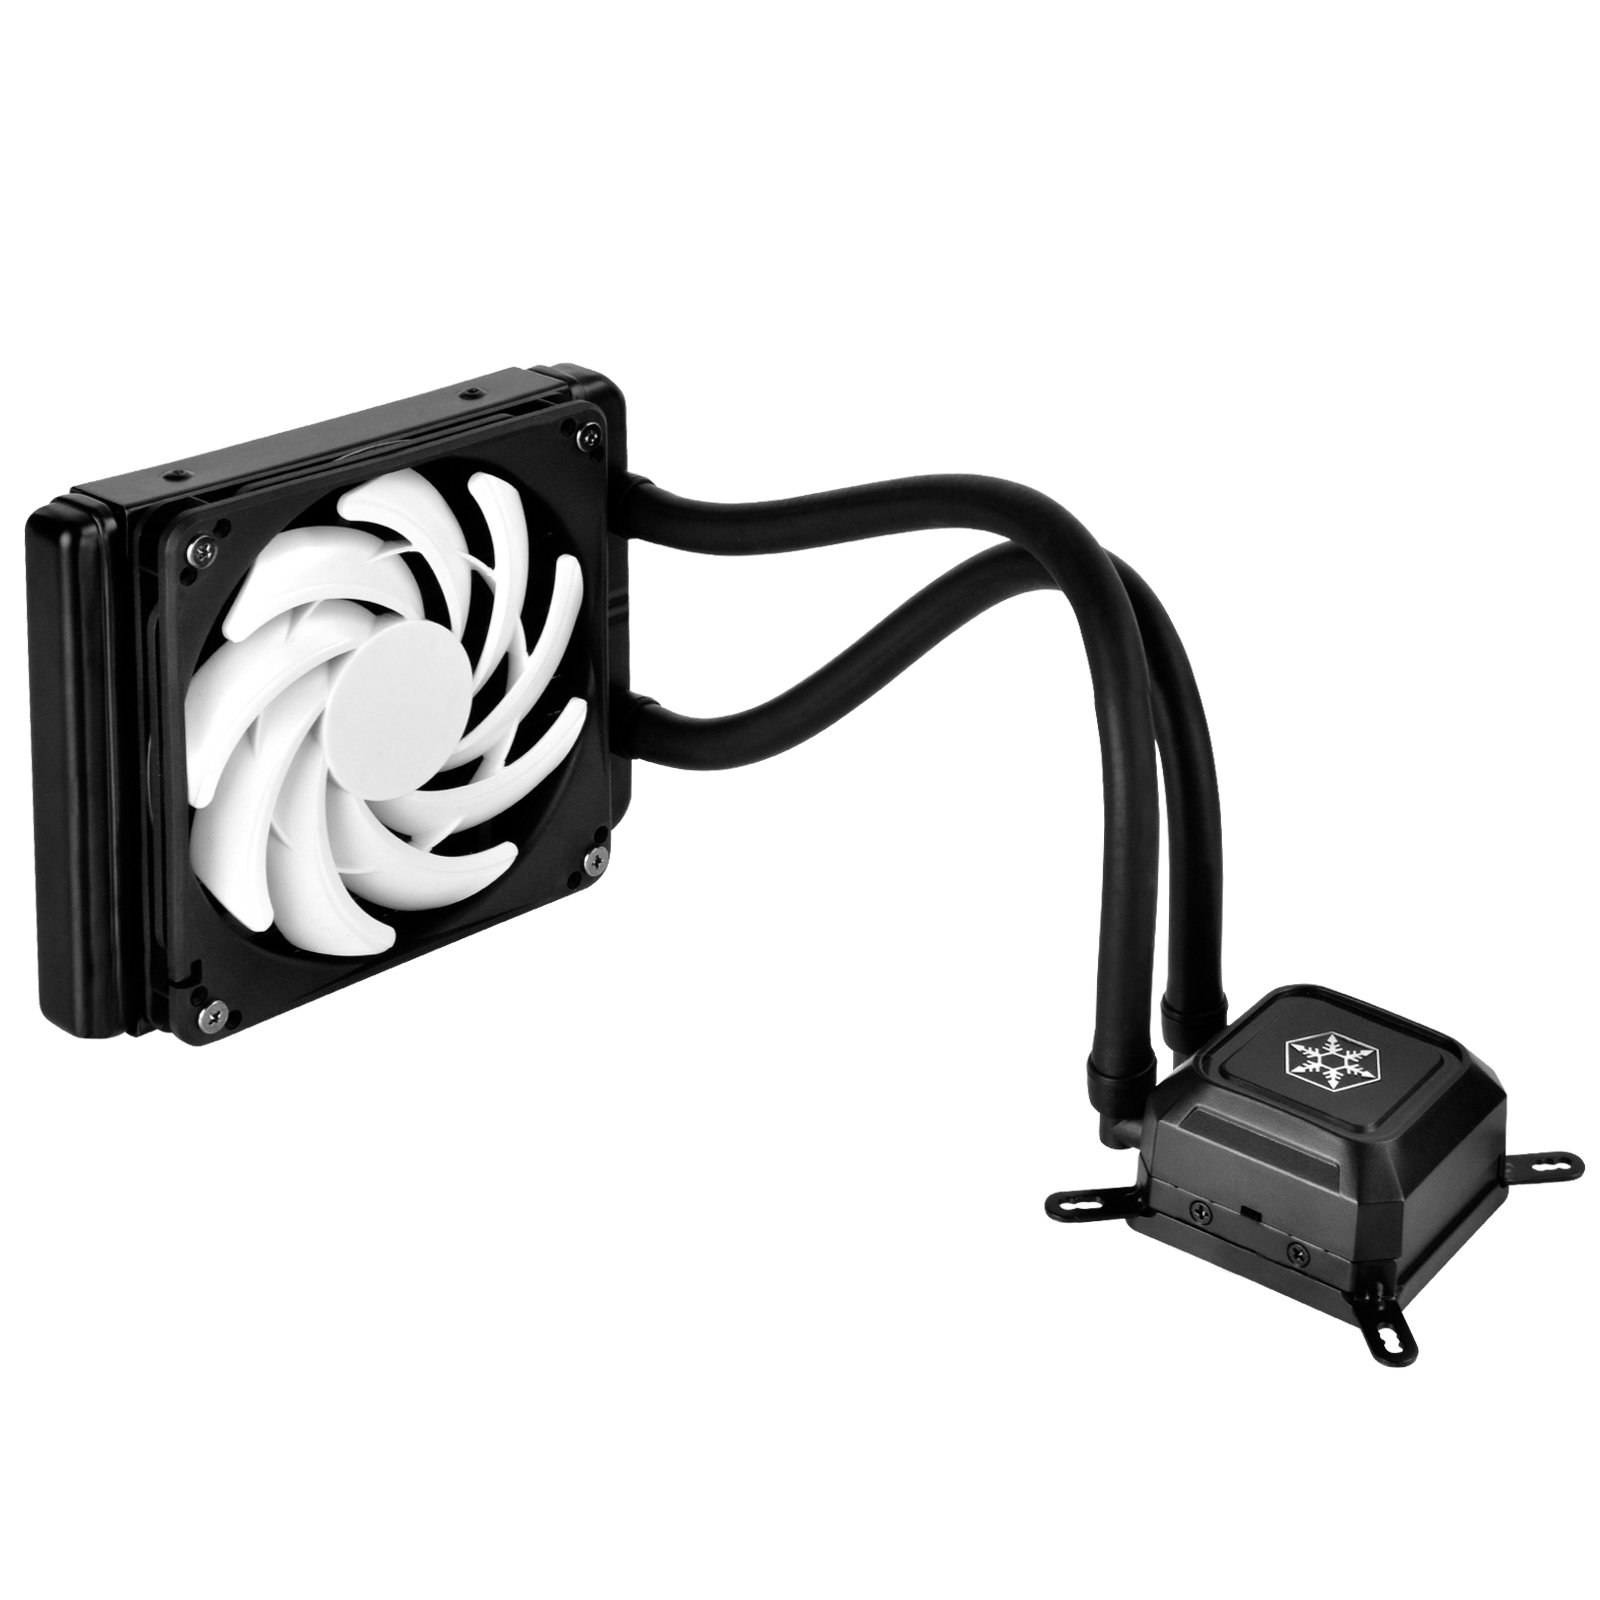 cheap amd liquid cooling find amd liquid cooling deals on line at VGA Cooler get quotations silverstone technology tundra series td03 slim all in one liquid cpu cooler cooling black